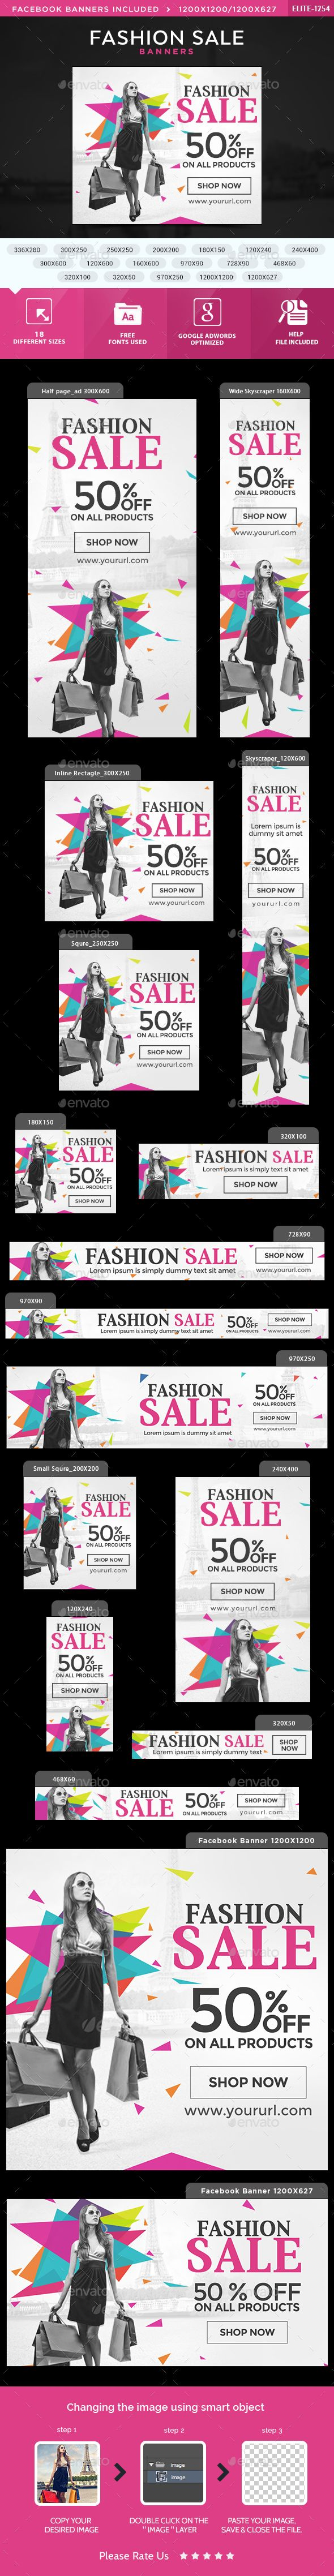 Fashion Sale Web Banners Template PSD. Download here: http://graphicriver.net/item/fashion-sale-banners/15159568?ref=ksioks